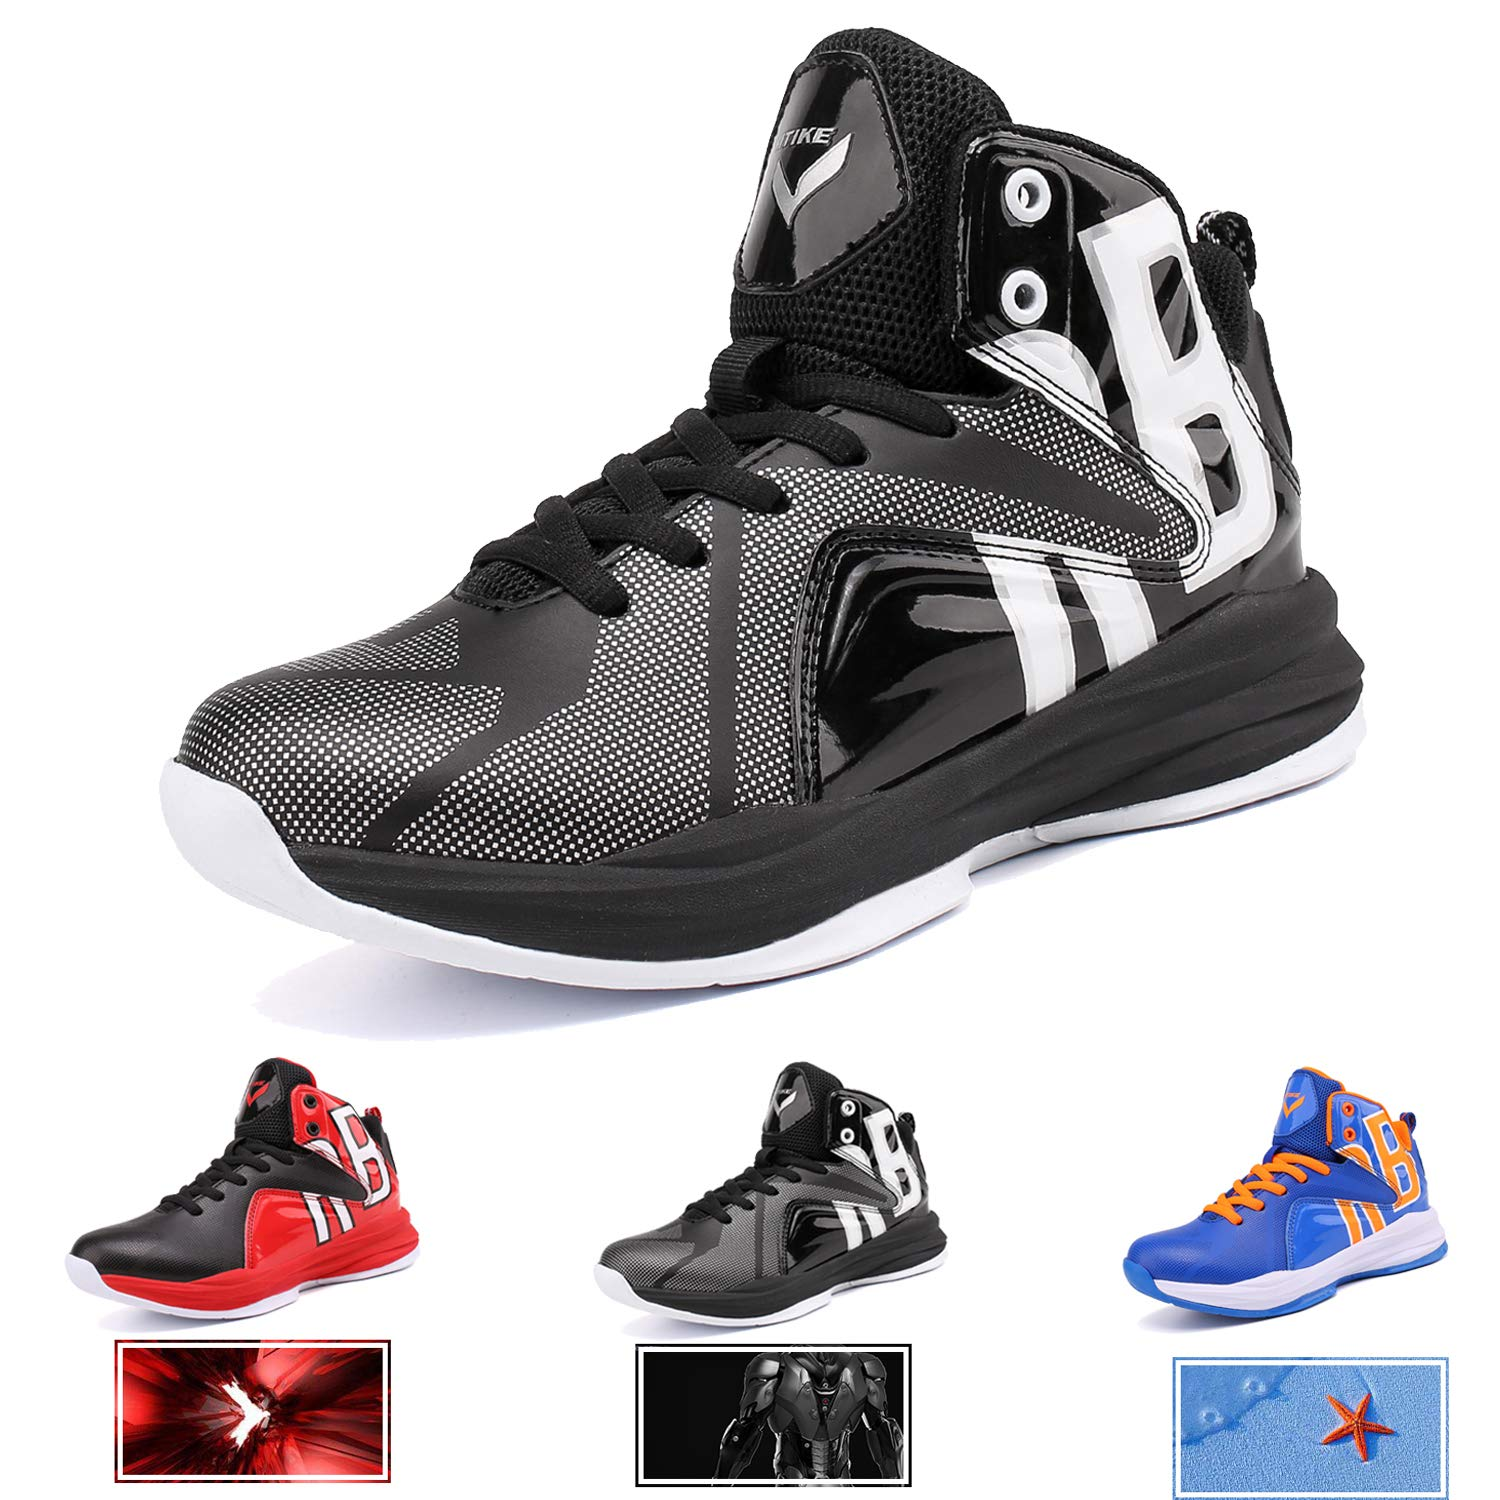 WETIKE Boys Basketball Shoes Lace Up High Top Sneaker Outdoor Trainers for Unisex Kids Durable Sport Shoes (Little Kid/Big Kid) Armor Black,1M US Little Kid